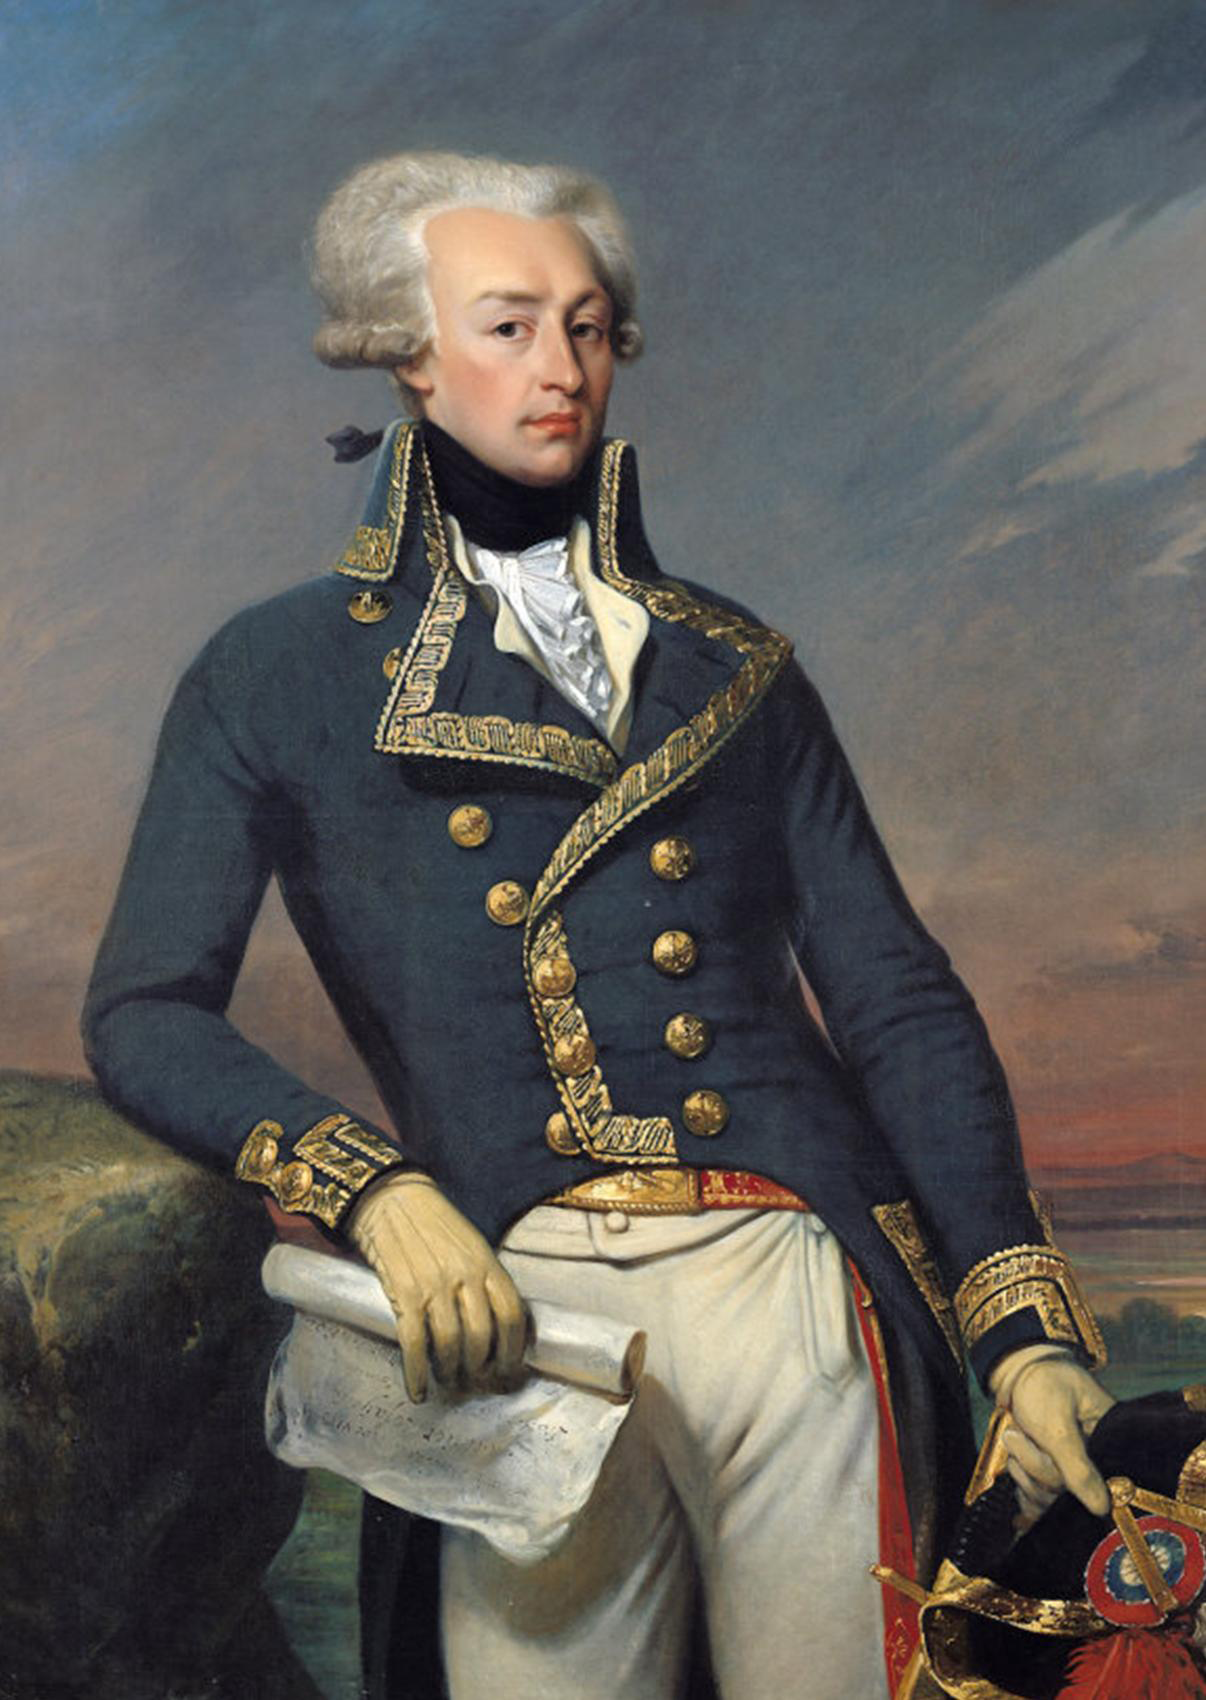 PATRON + Gen. LaFayette letters - LaFayette arrives in Alabama - John Banks reports progress